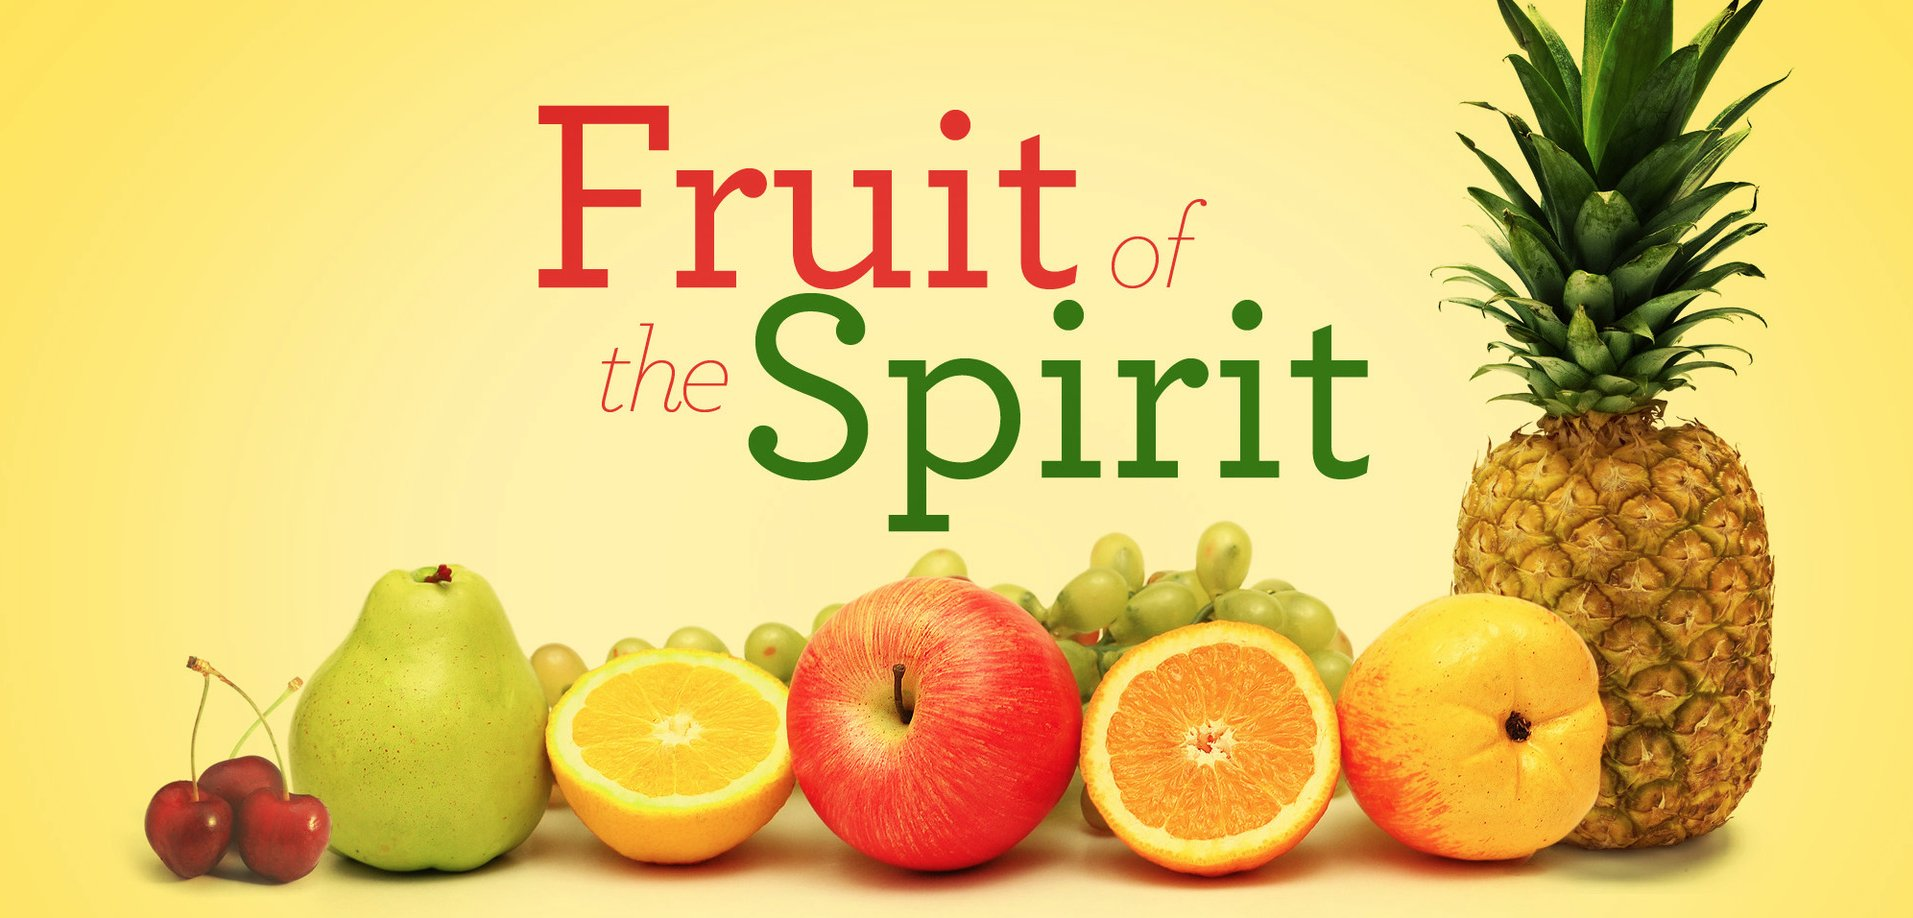 Bearing Fruit - Fruit of the Spirit Series (Jeremy Bowling)